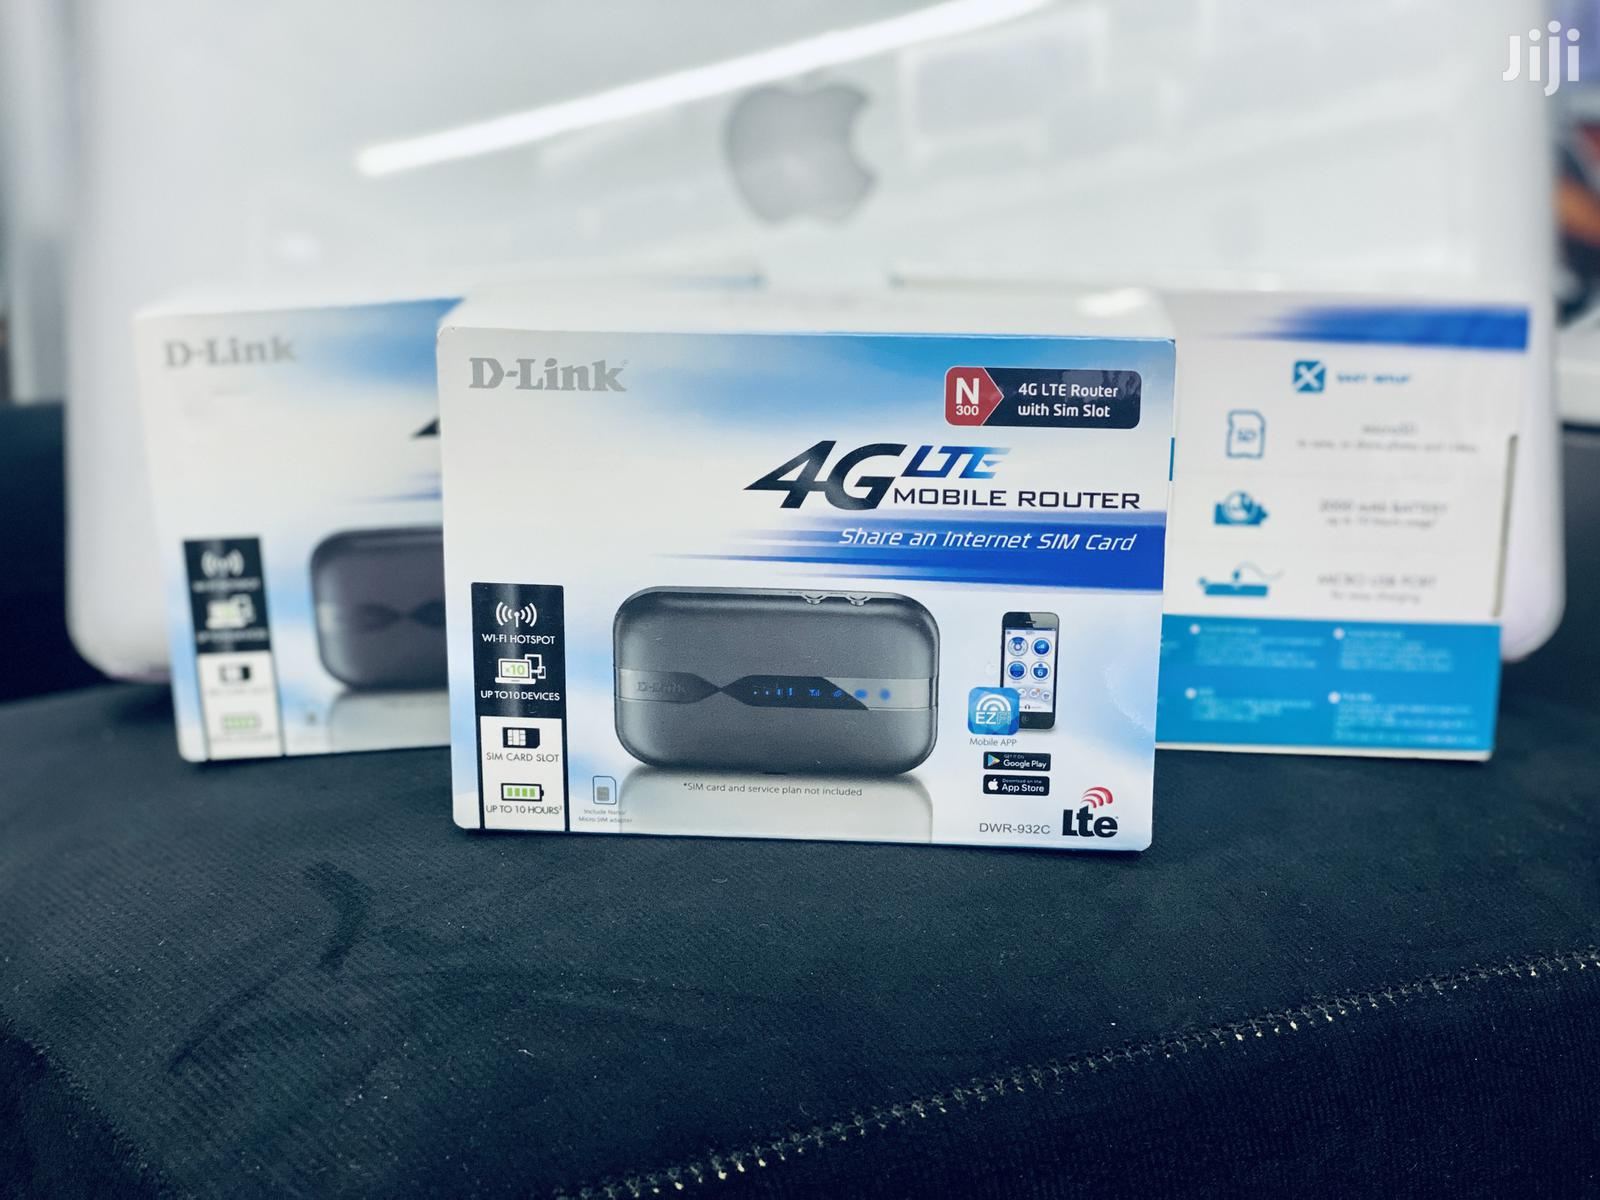 D-Link 4G LTE DWR-923C UNLOCKED Mobile Wifi Router Mifi   Networking Products for sale in Kampala, Uganda